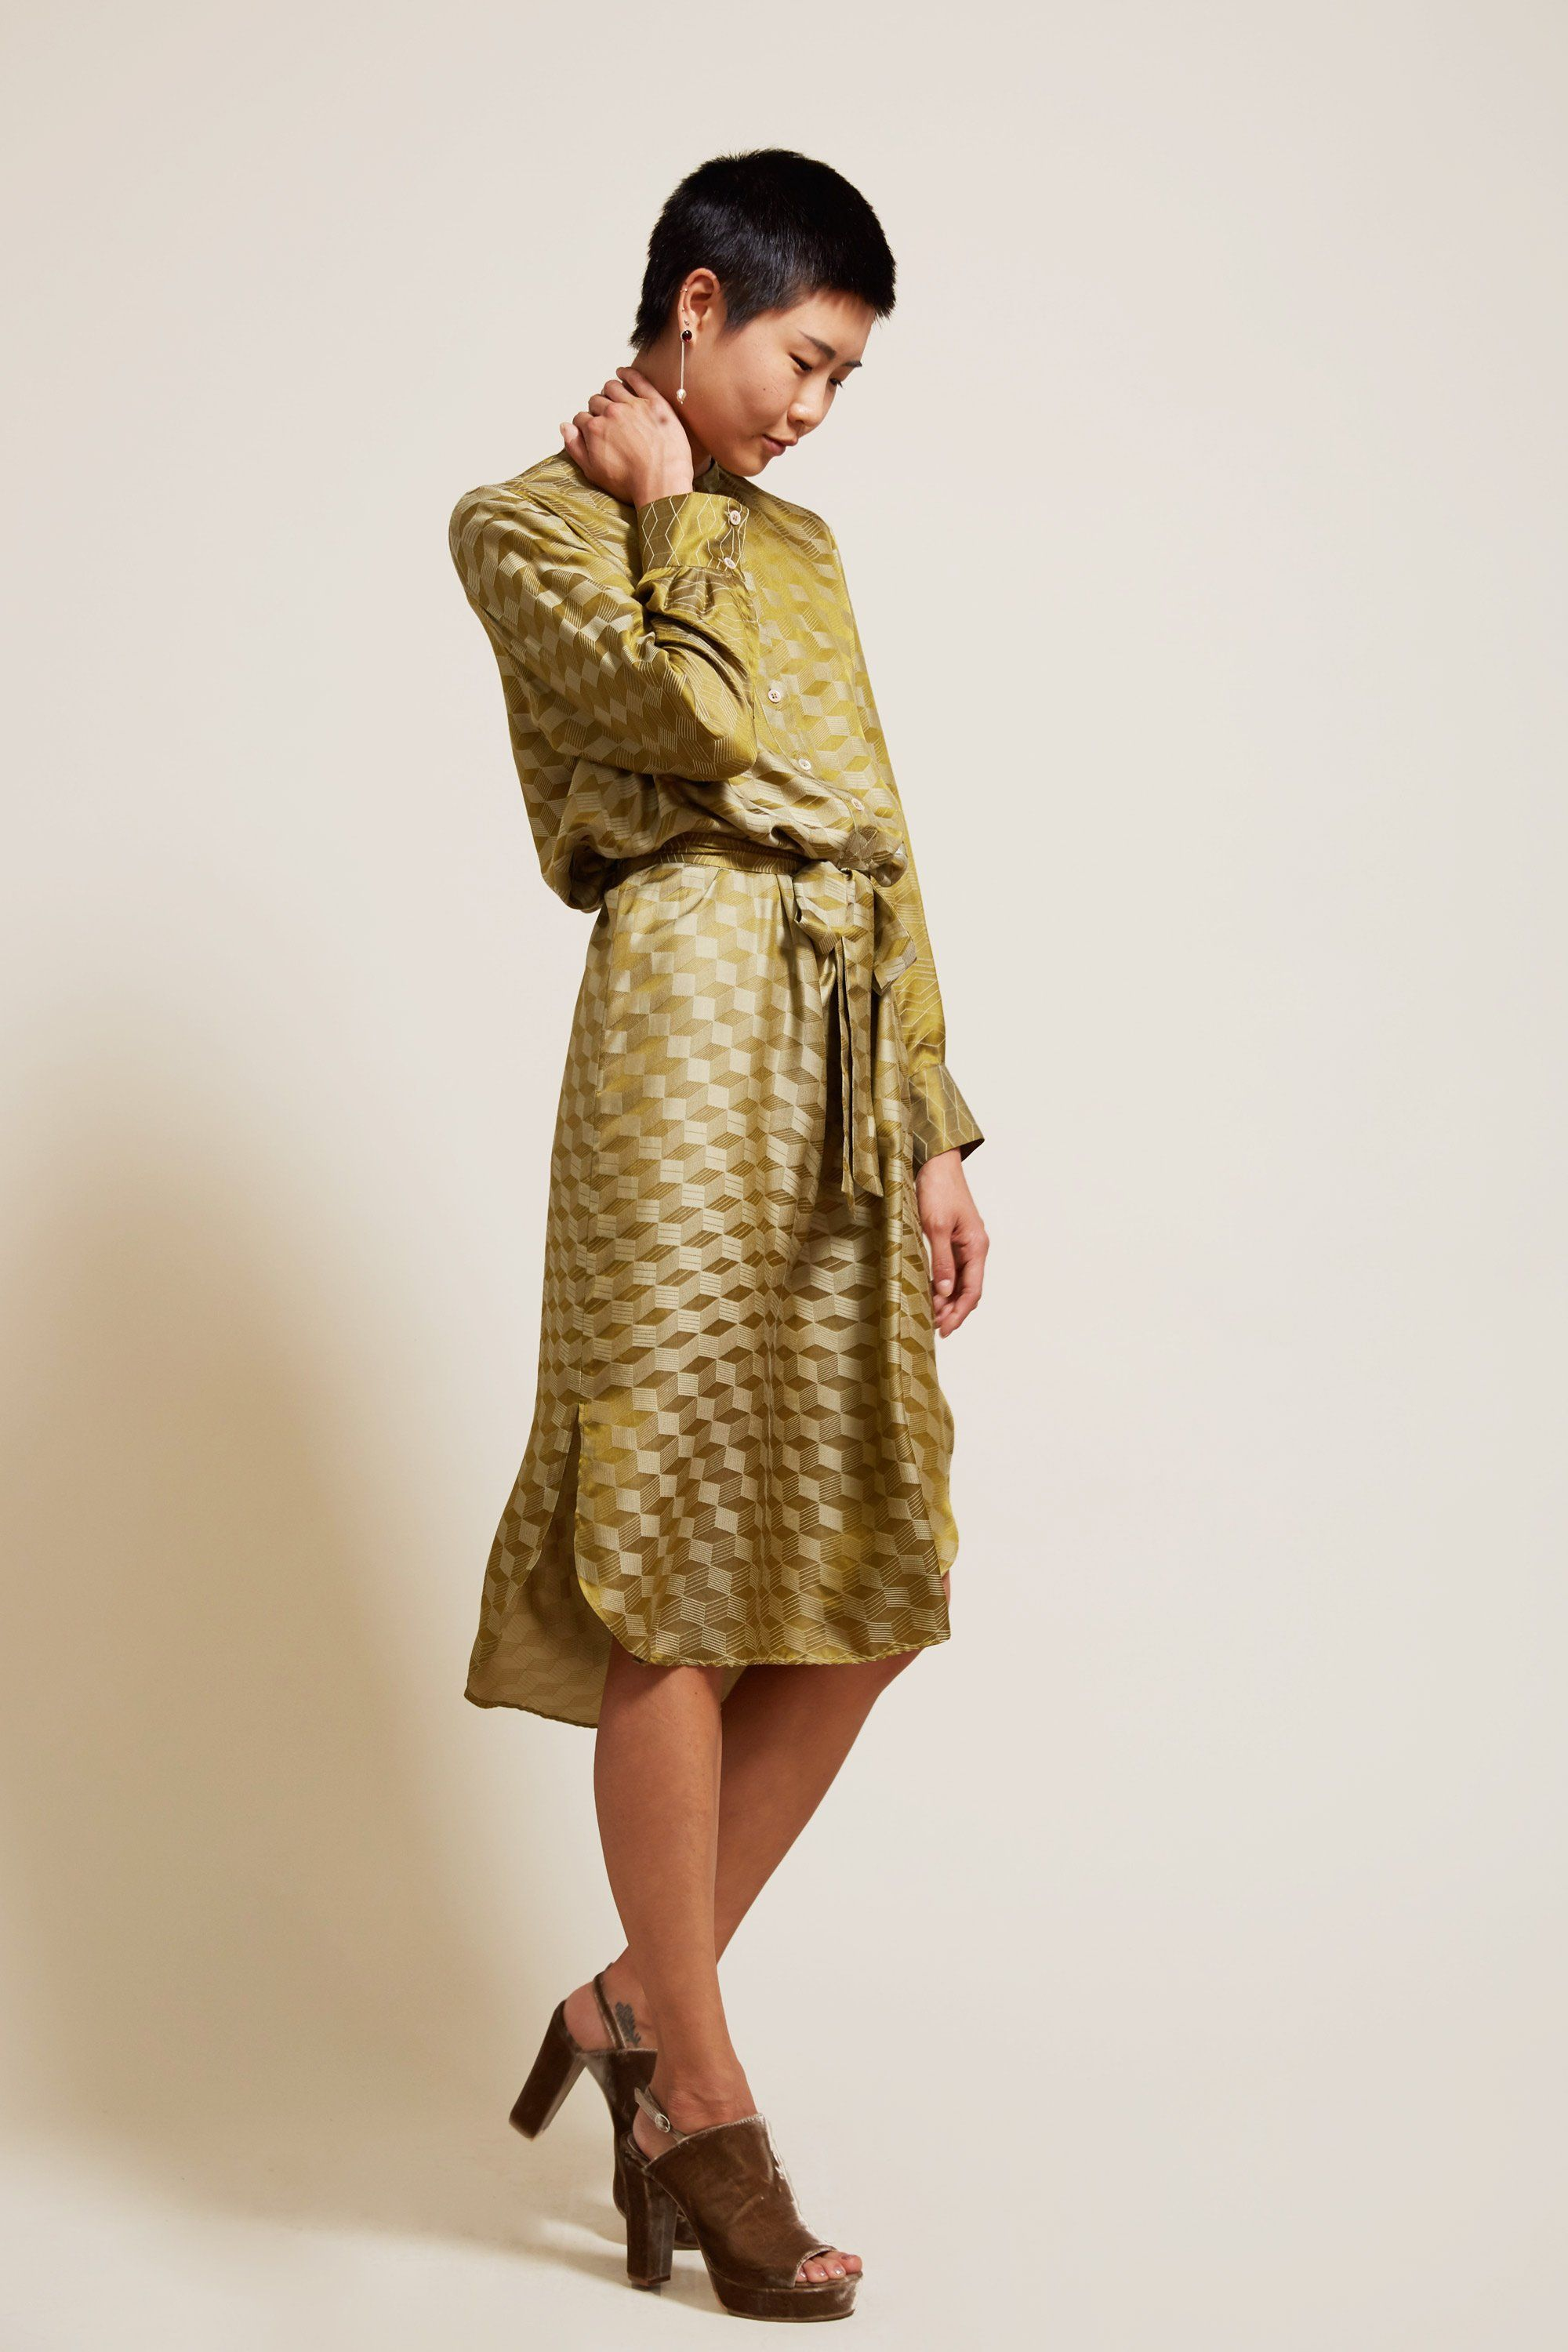 cdaf9ff4b0c Indress Lagos Jacquard Shirt Dress in Olive